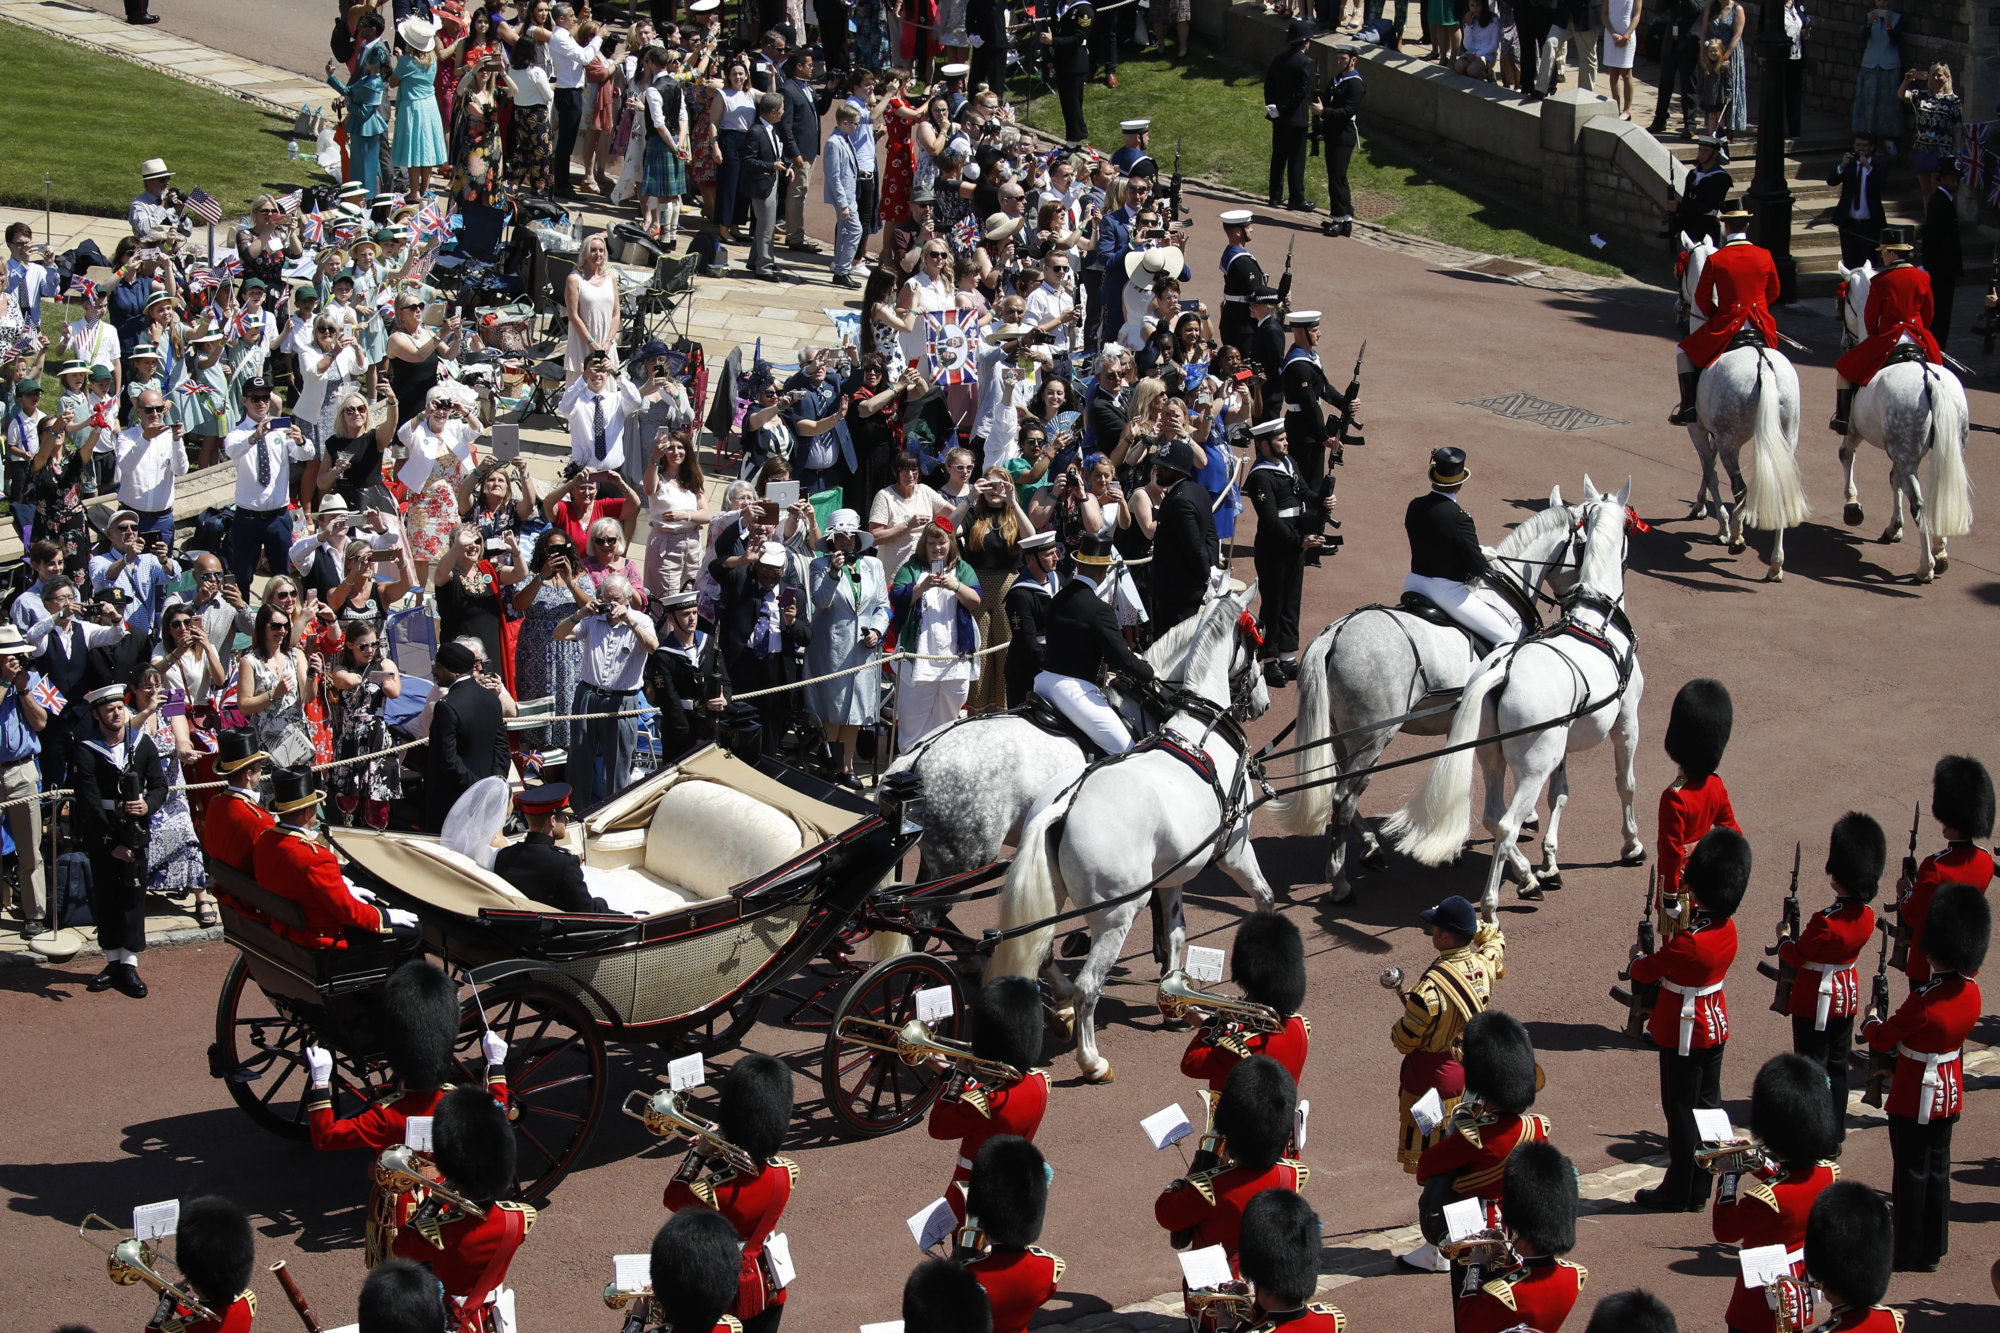 Britain's Prince Harry and Meghan Markle leave in a carriage after their wedding ceremony at St. George's Chapel in Windsor Castle in Windsor, near London, England, Saturday, May 19, 2018. (Odd Andersen/pool photo via AP)